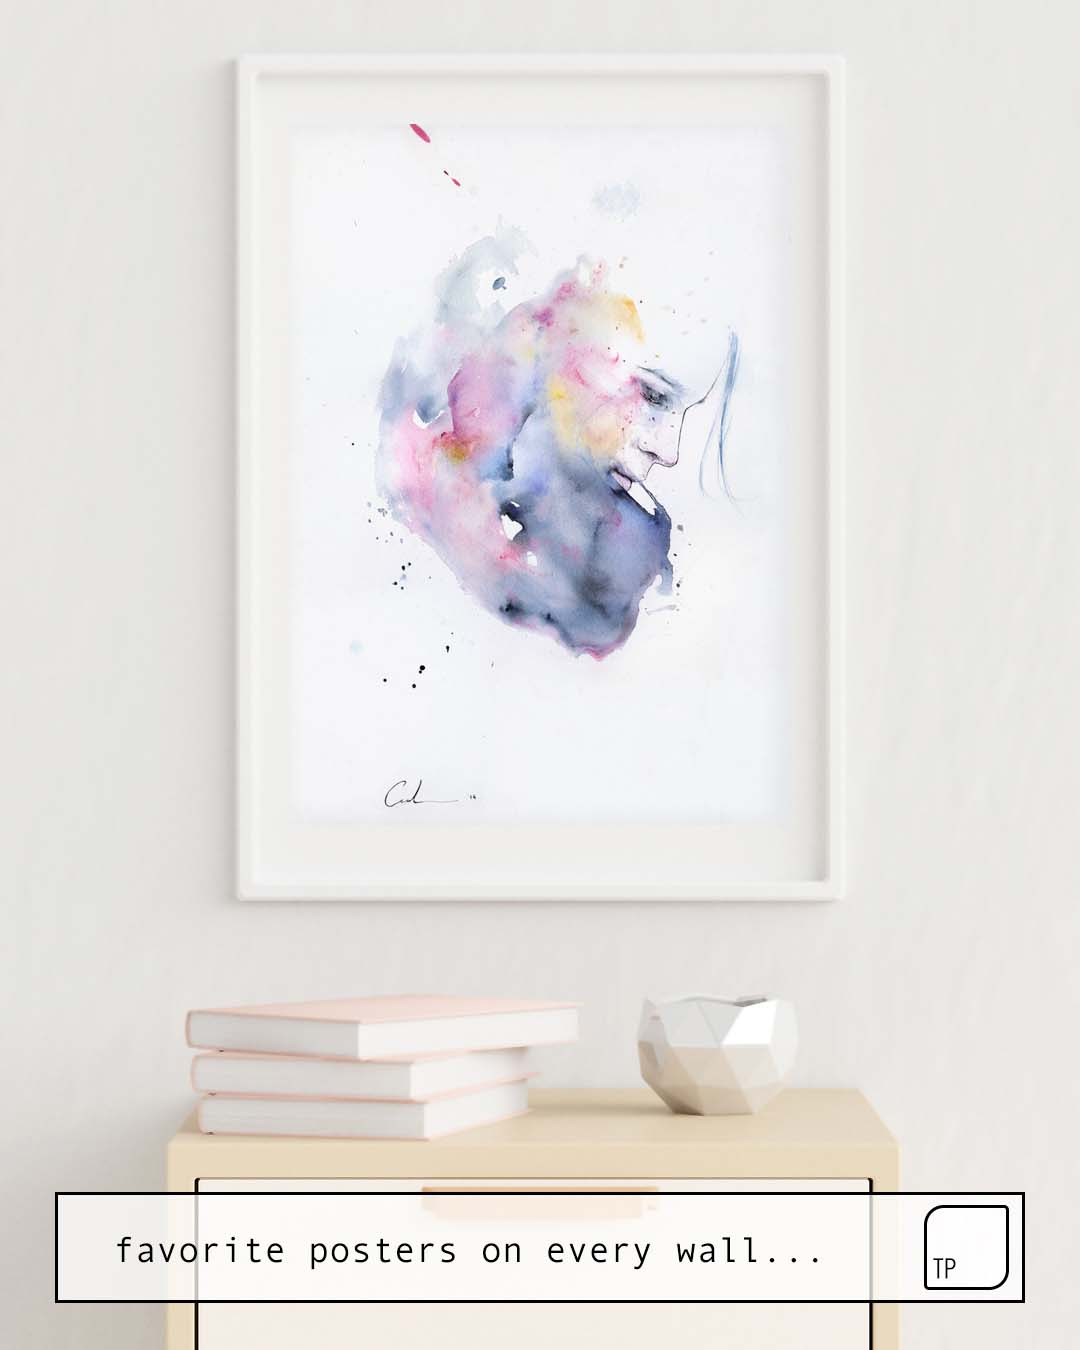 The photo shows an example of furnishing with the motif JANUARY by Agnes Cecile as mural